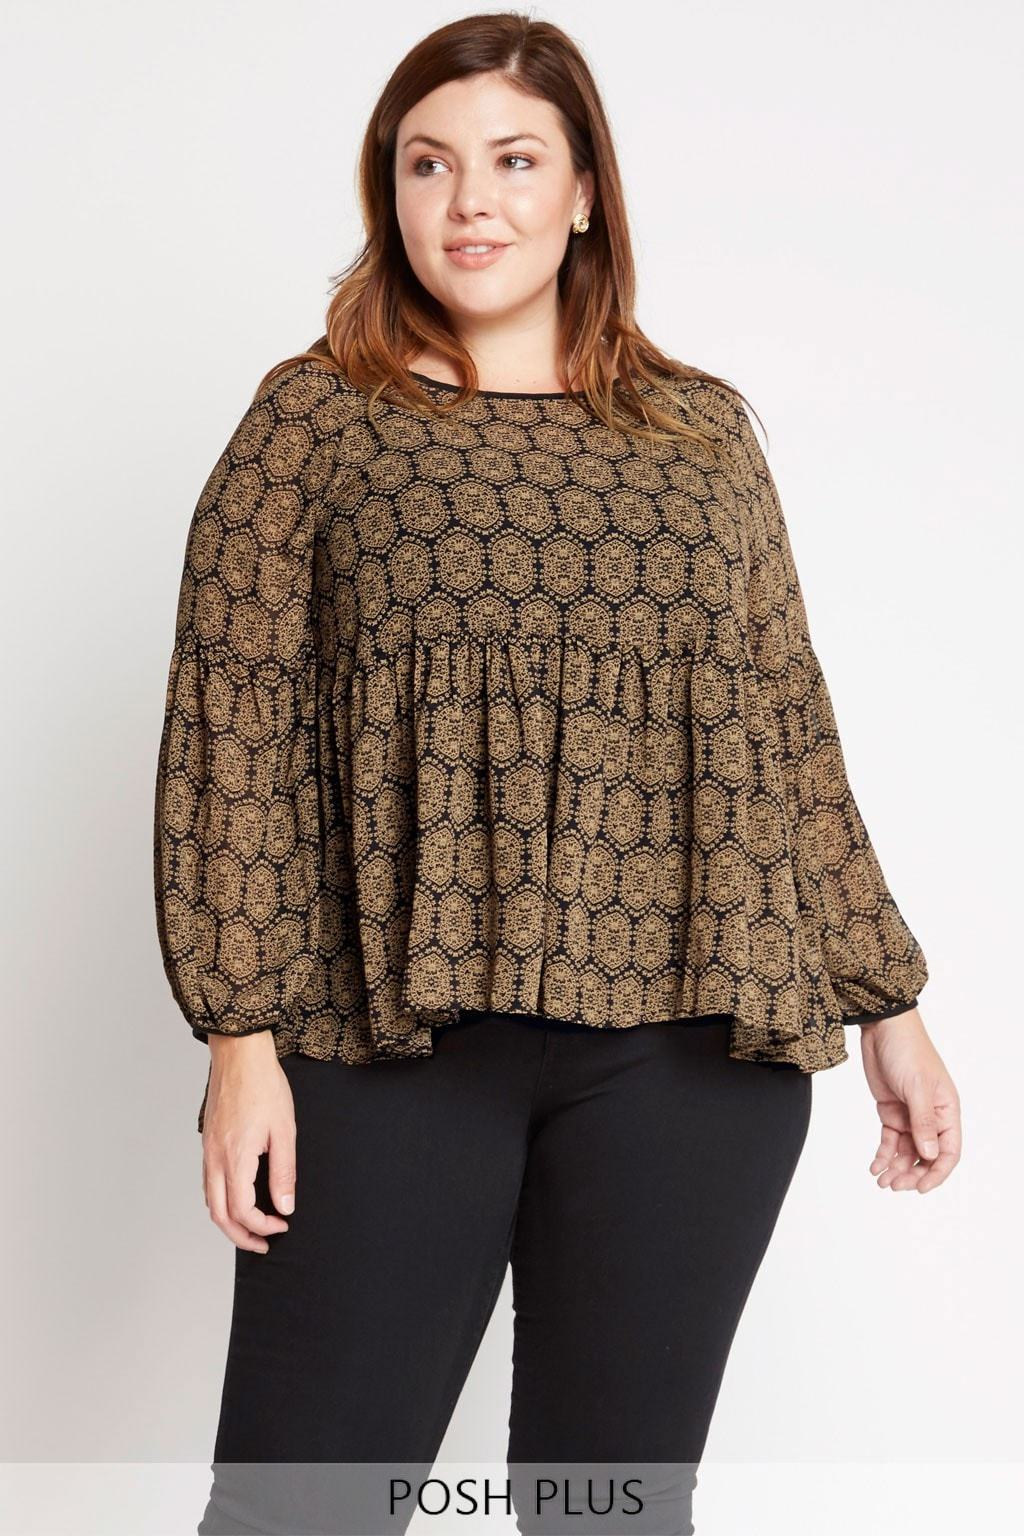 Poshsquare Plus XL / Brown Second Nature Printed Chiffon Peasant Top Plus Size